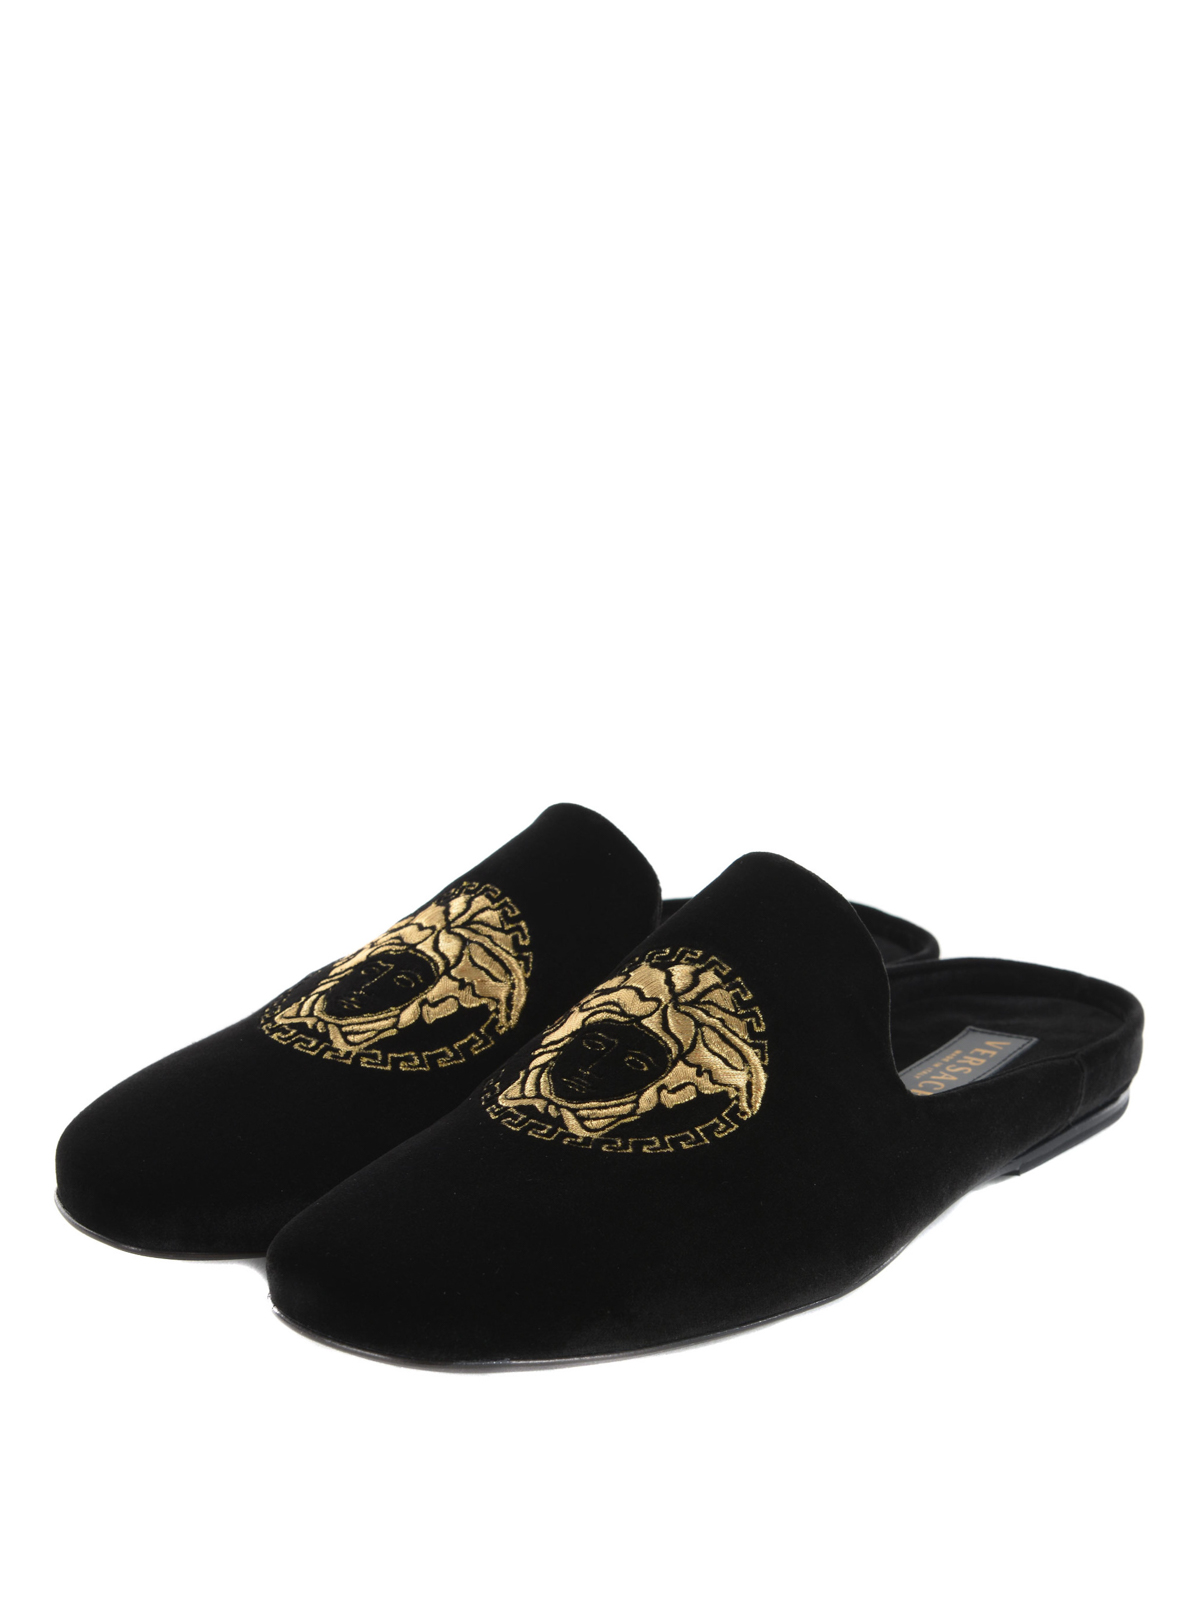 6b70d4675c74 Versace - Medusa Head velvet slippers - Loafers   Slippers - DSU6273 ...